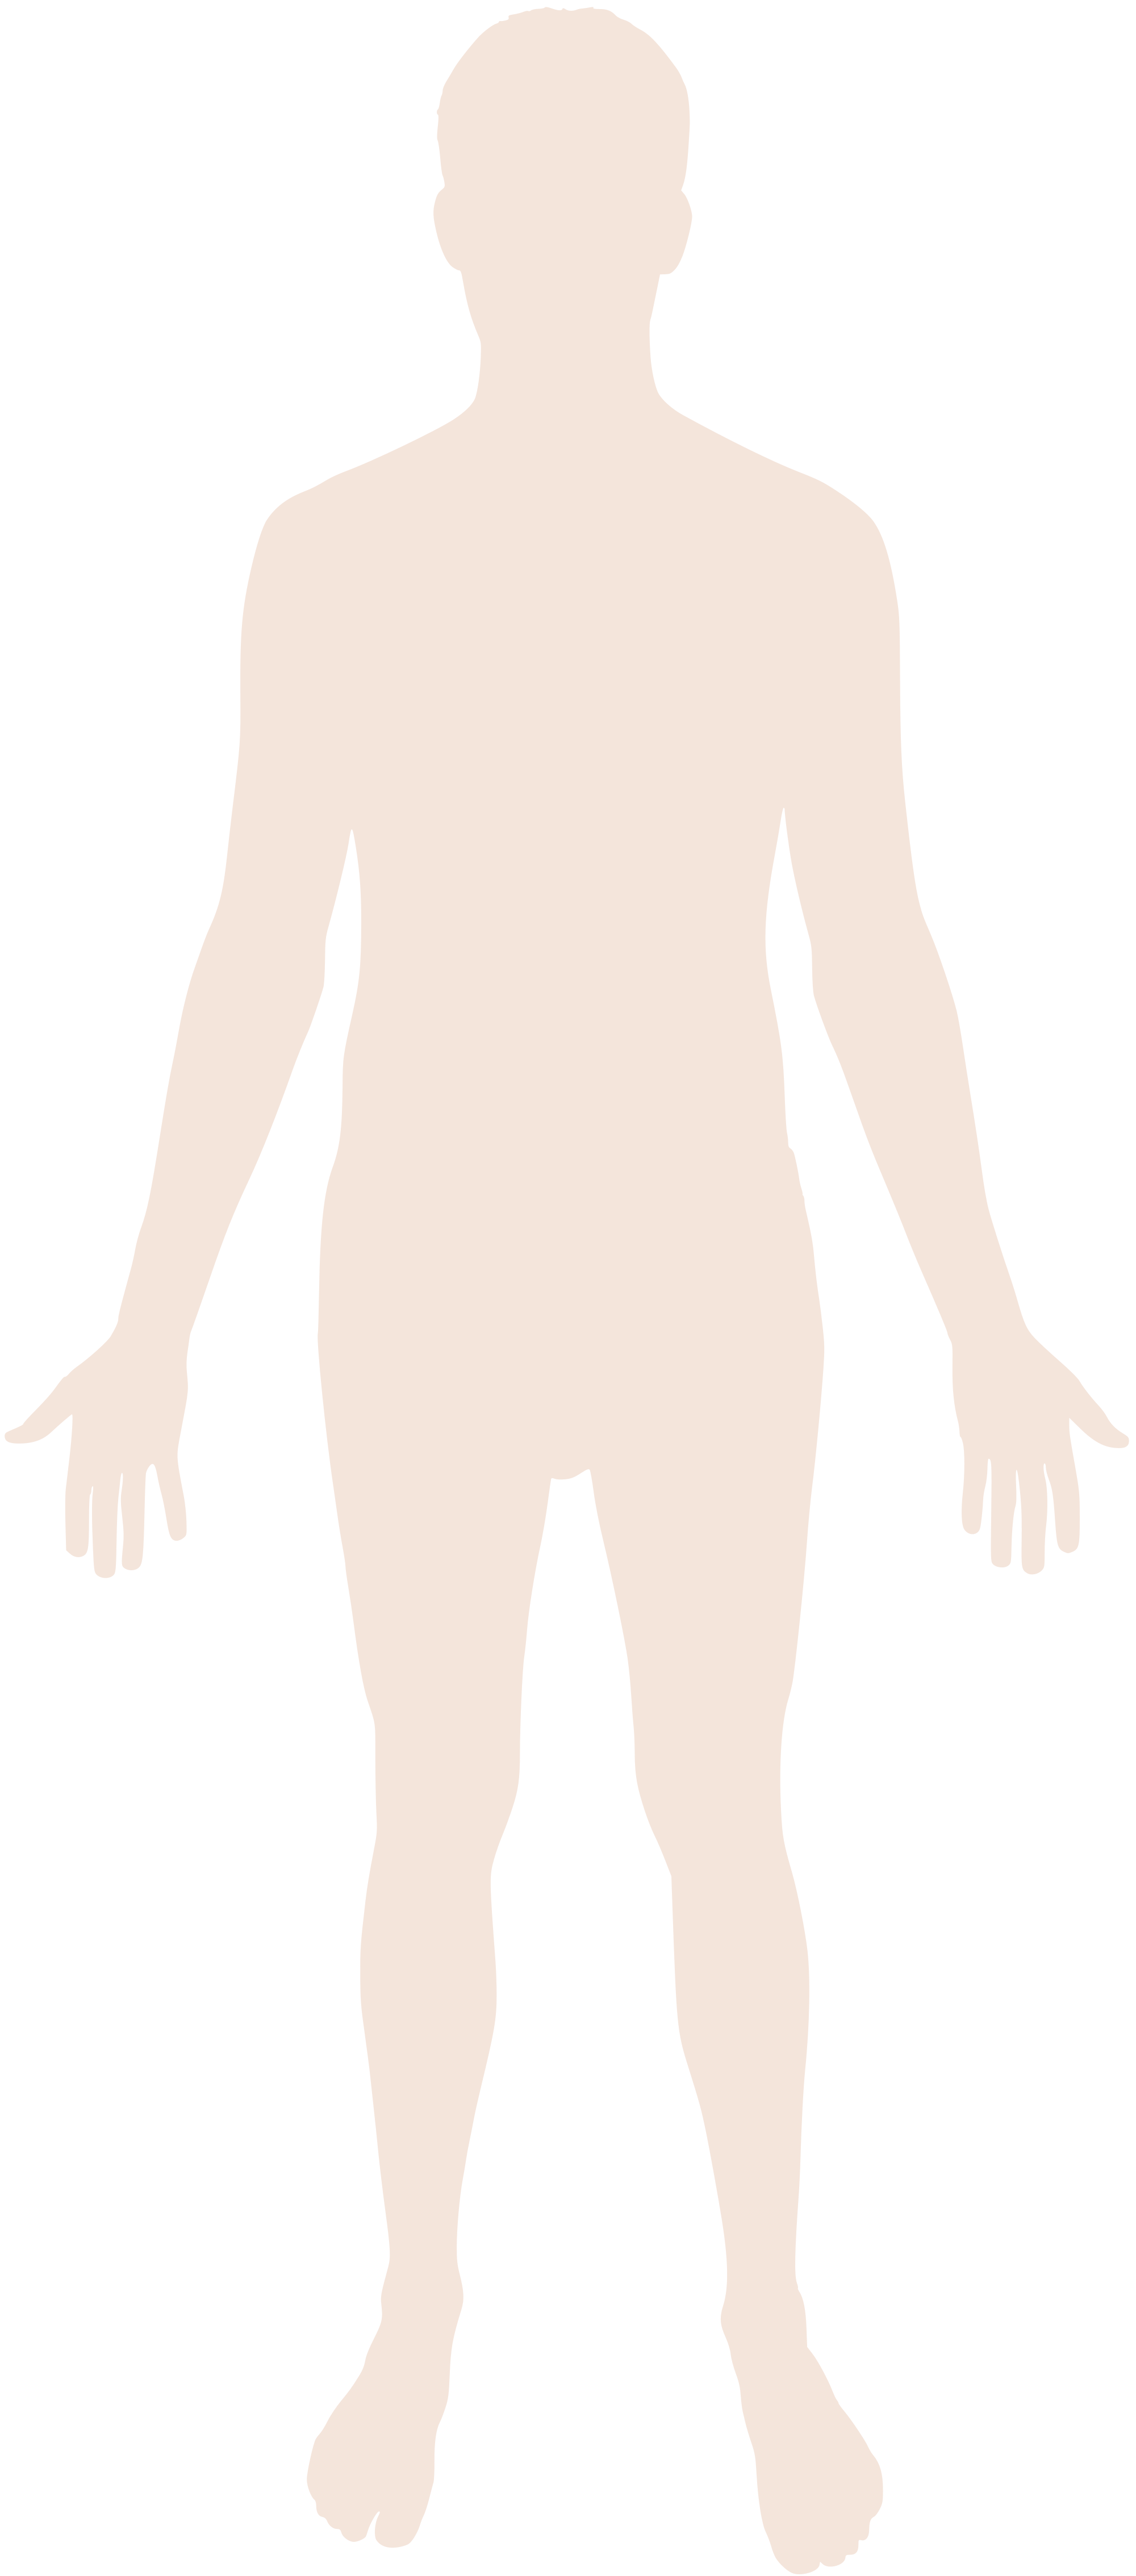 Body outline clipart svg. File human silhouette wikimedia